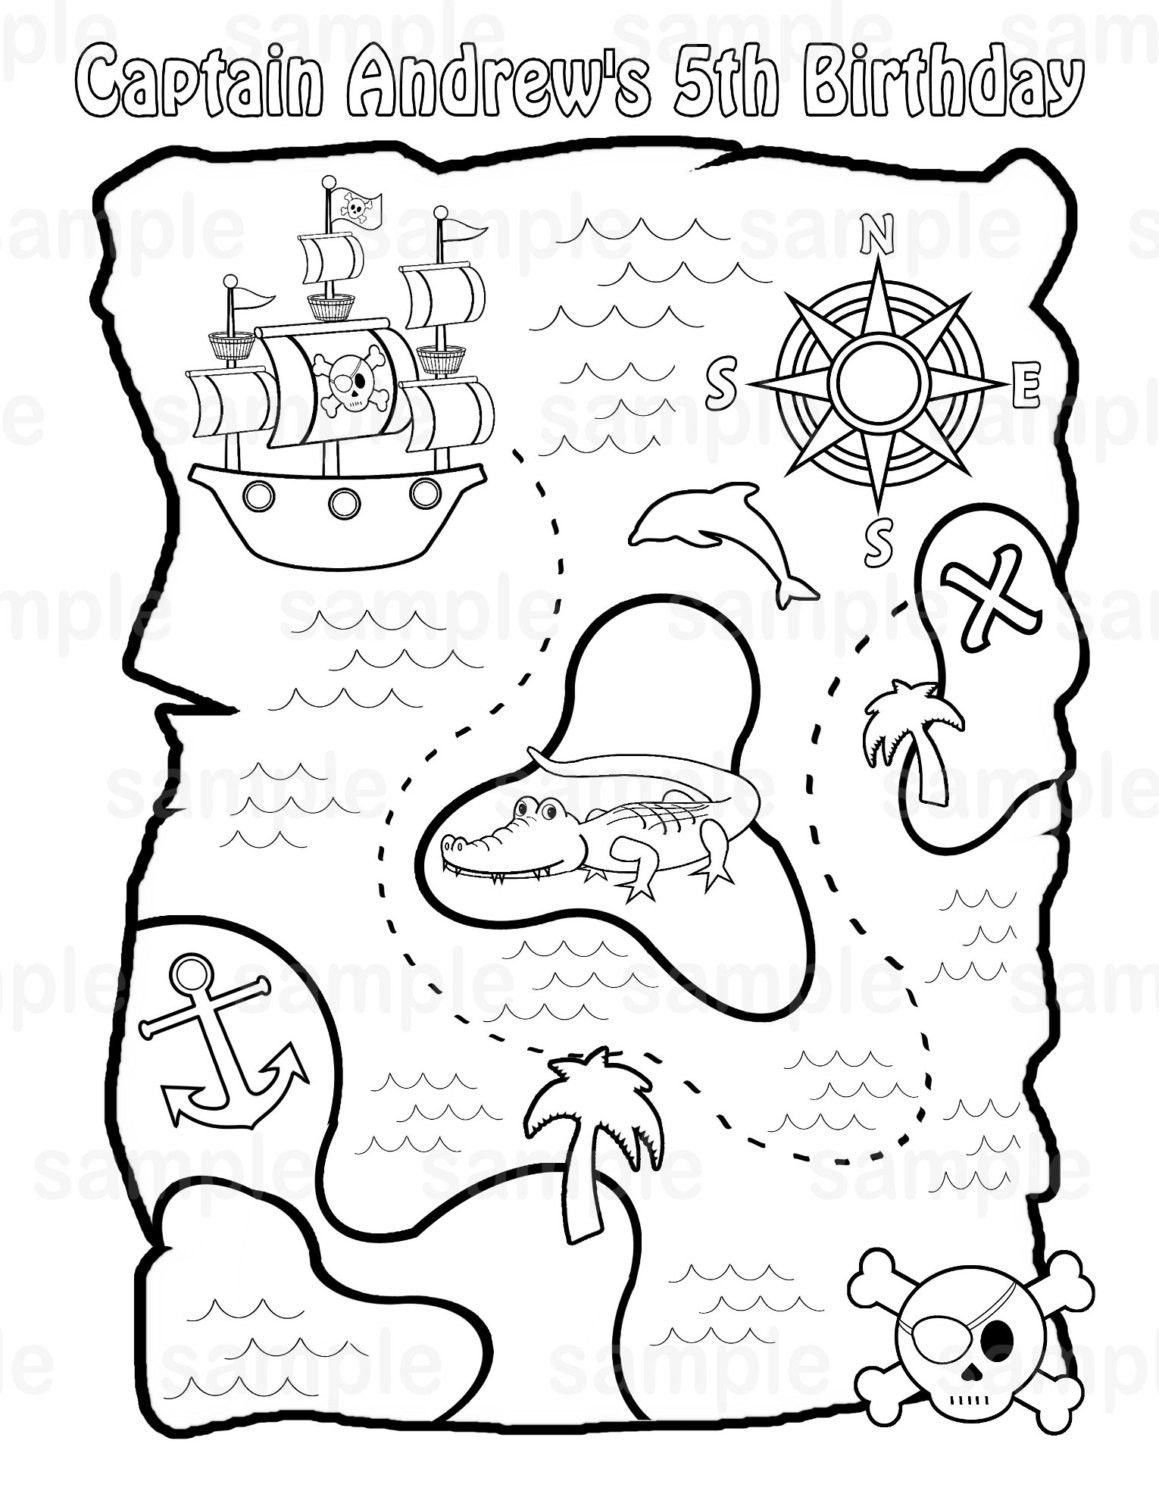 Printable Pirate Treasure Map For Kids